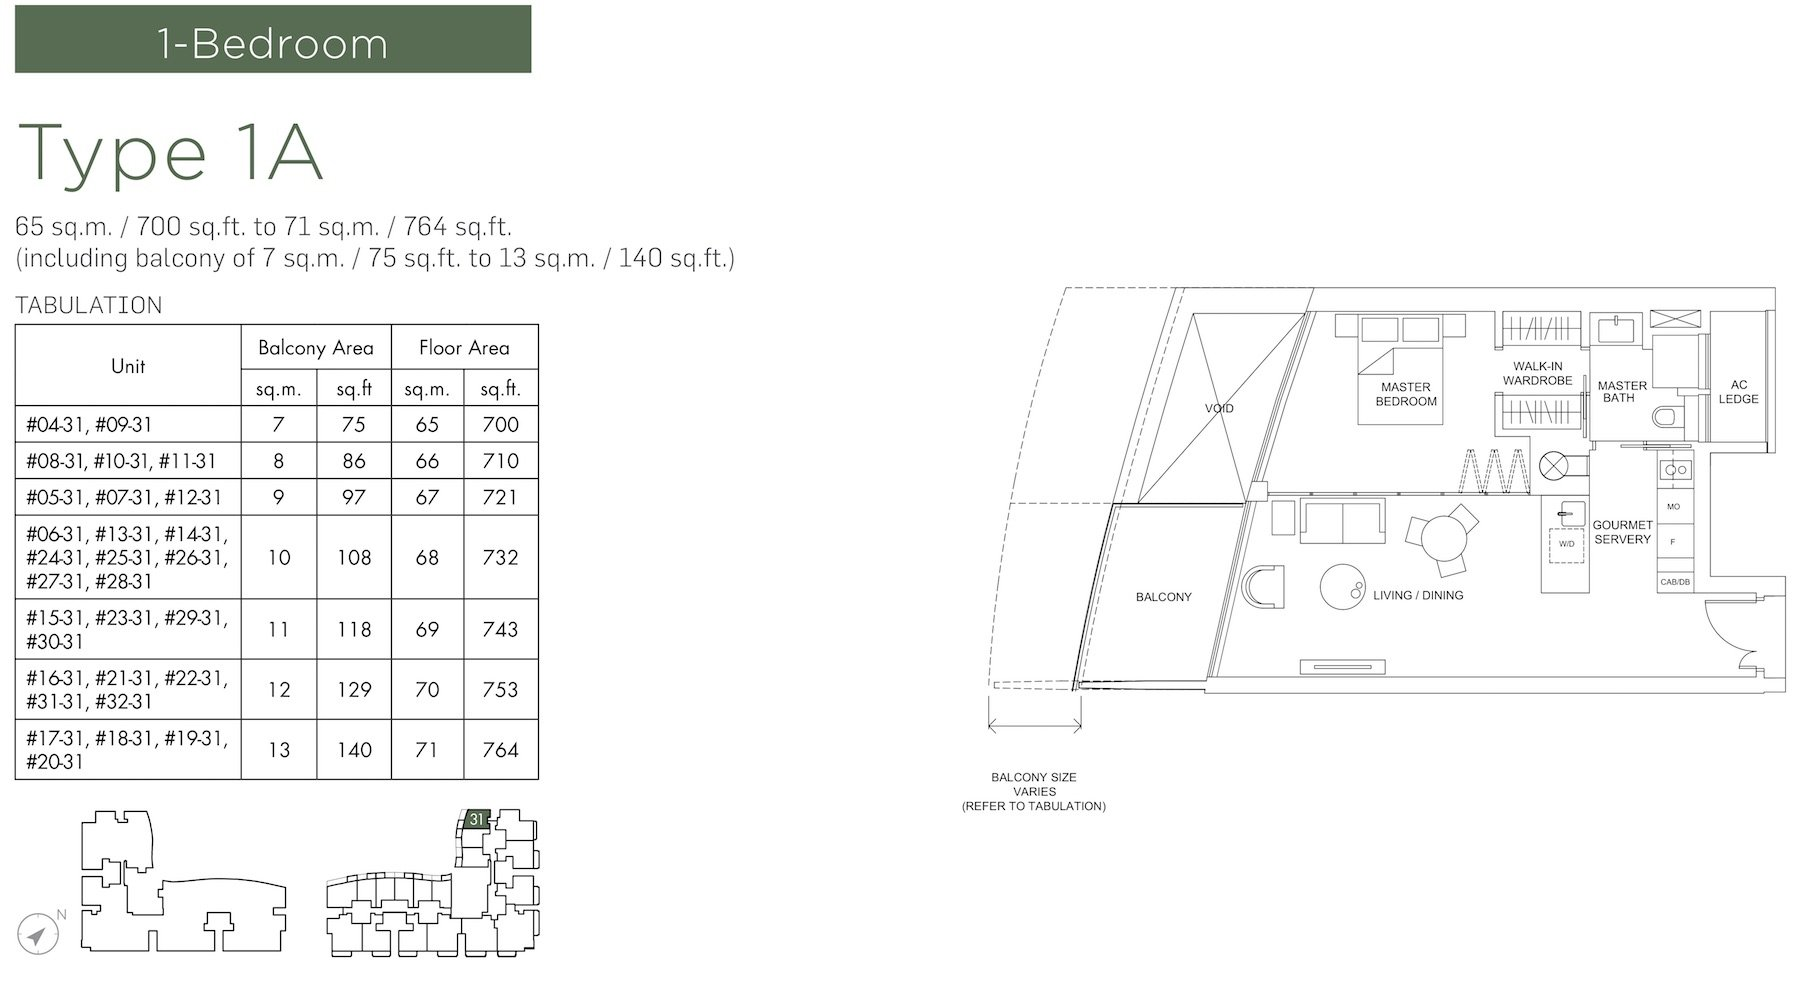 Marina One Residences 滨海盛景豪苑 floor plans 1 bedroom 1A